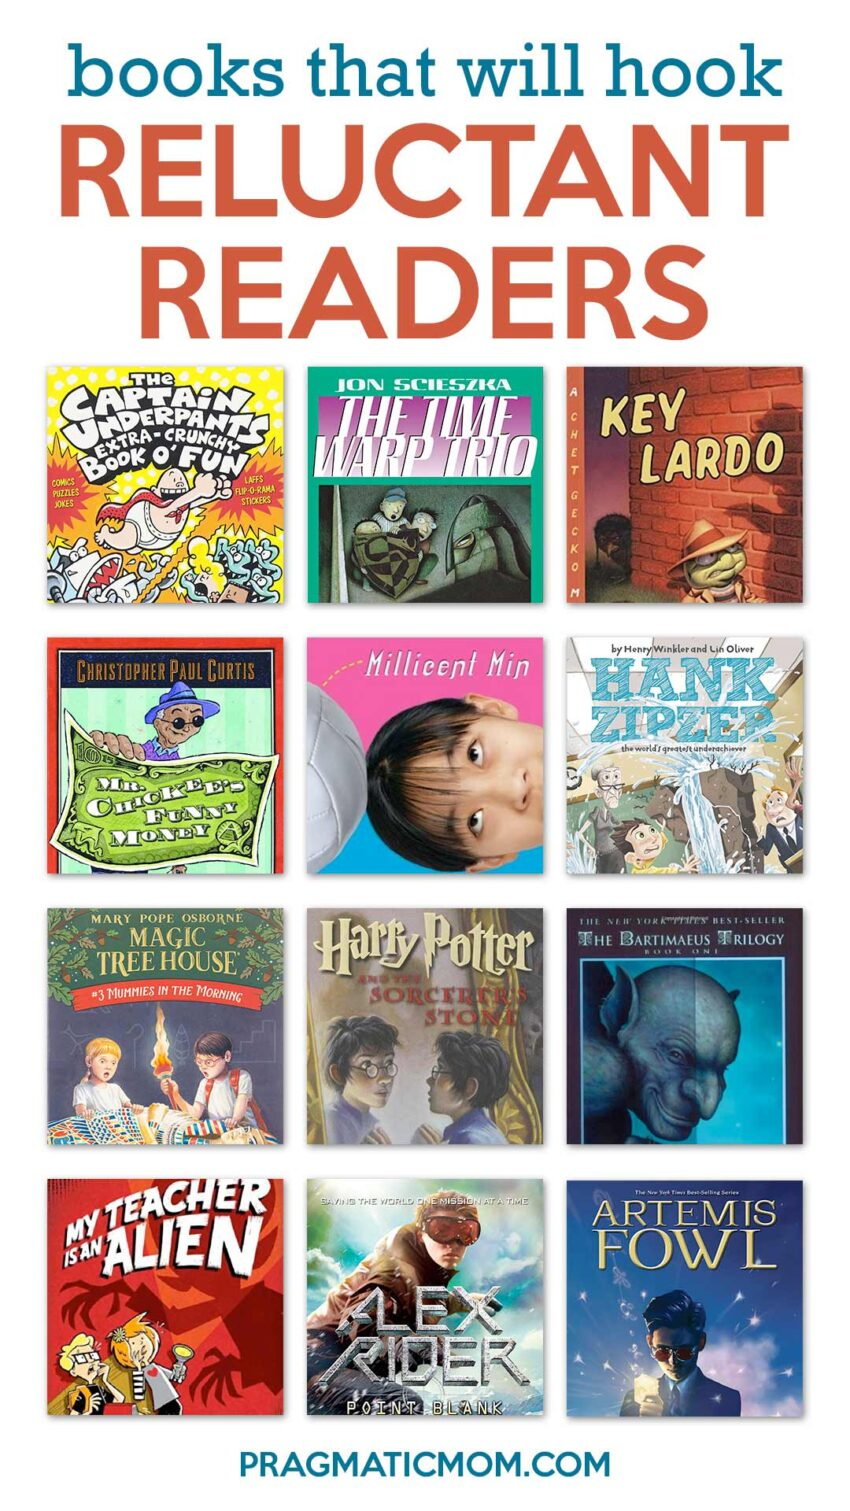 Books That Will Hook Reluctant Readers